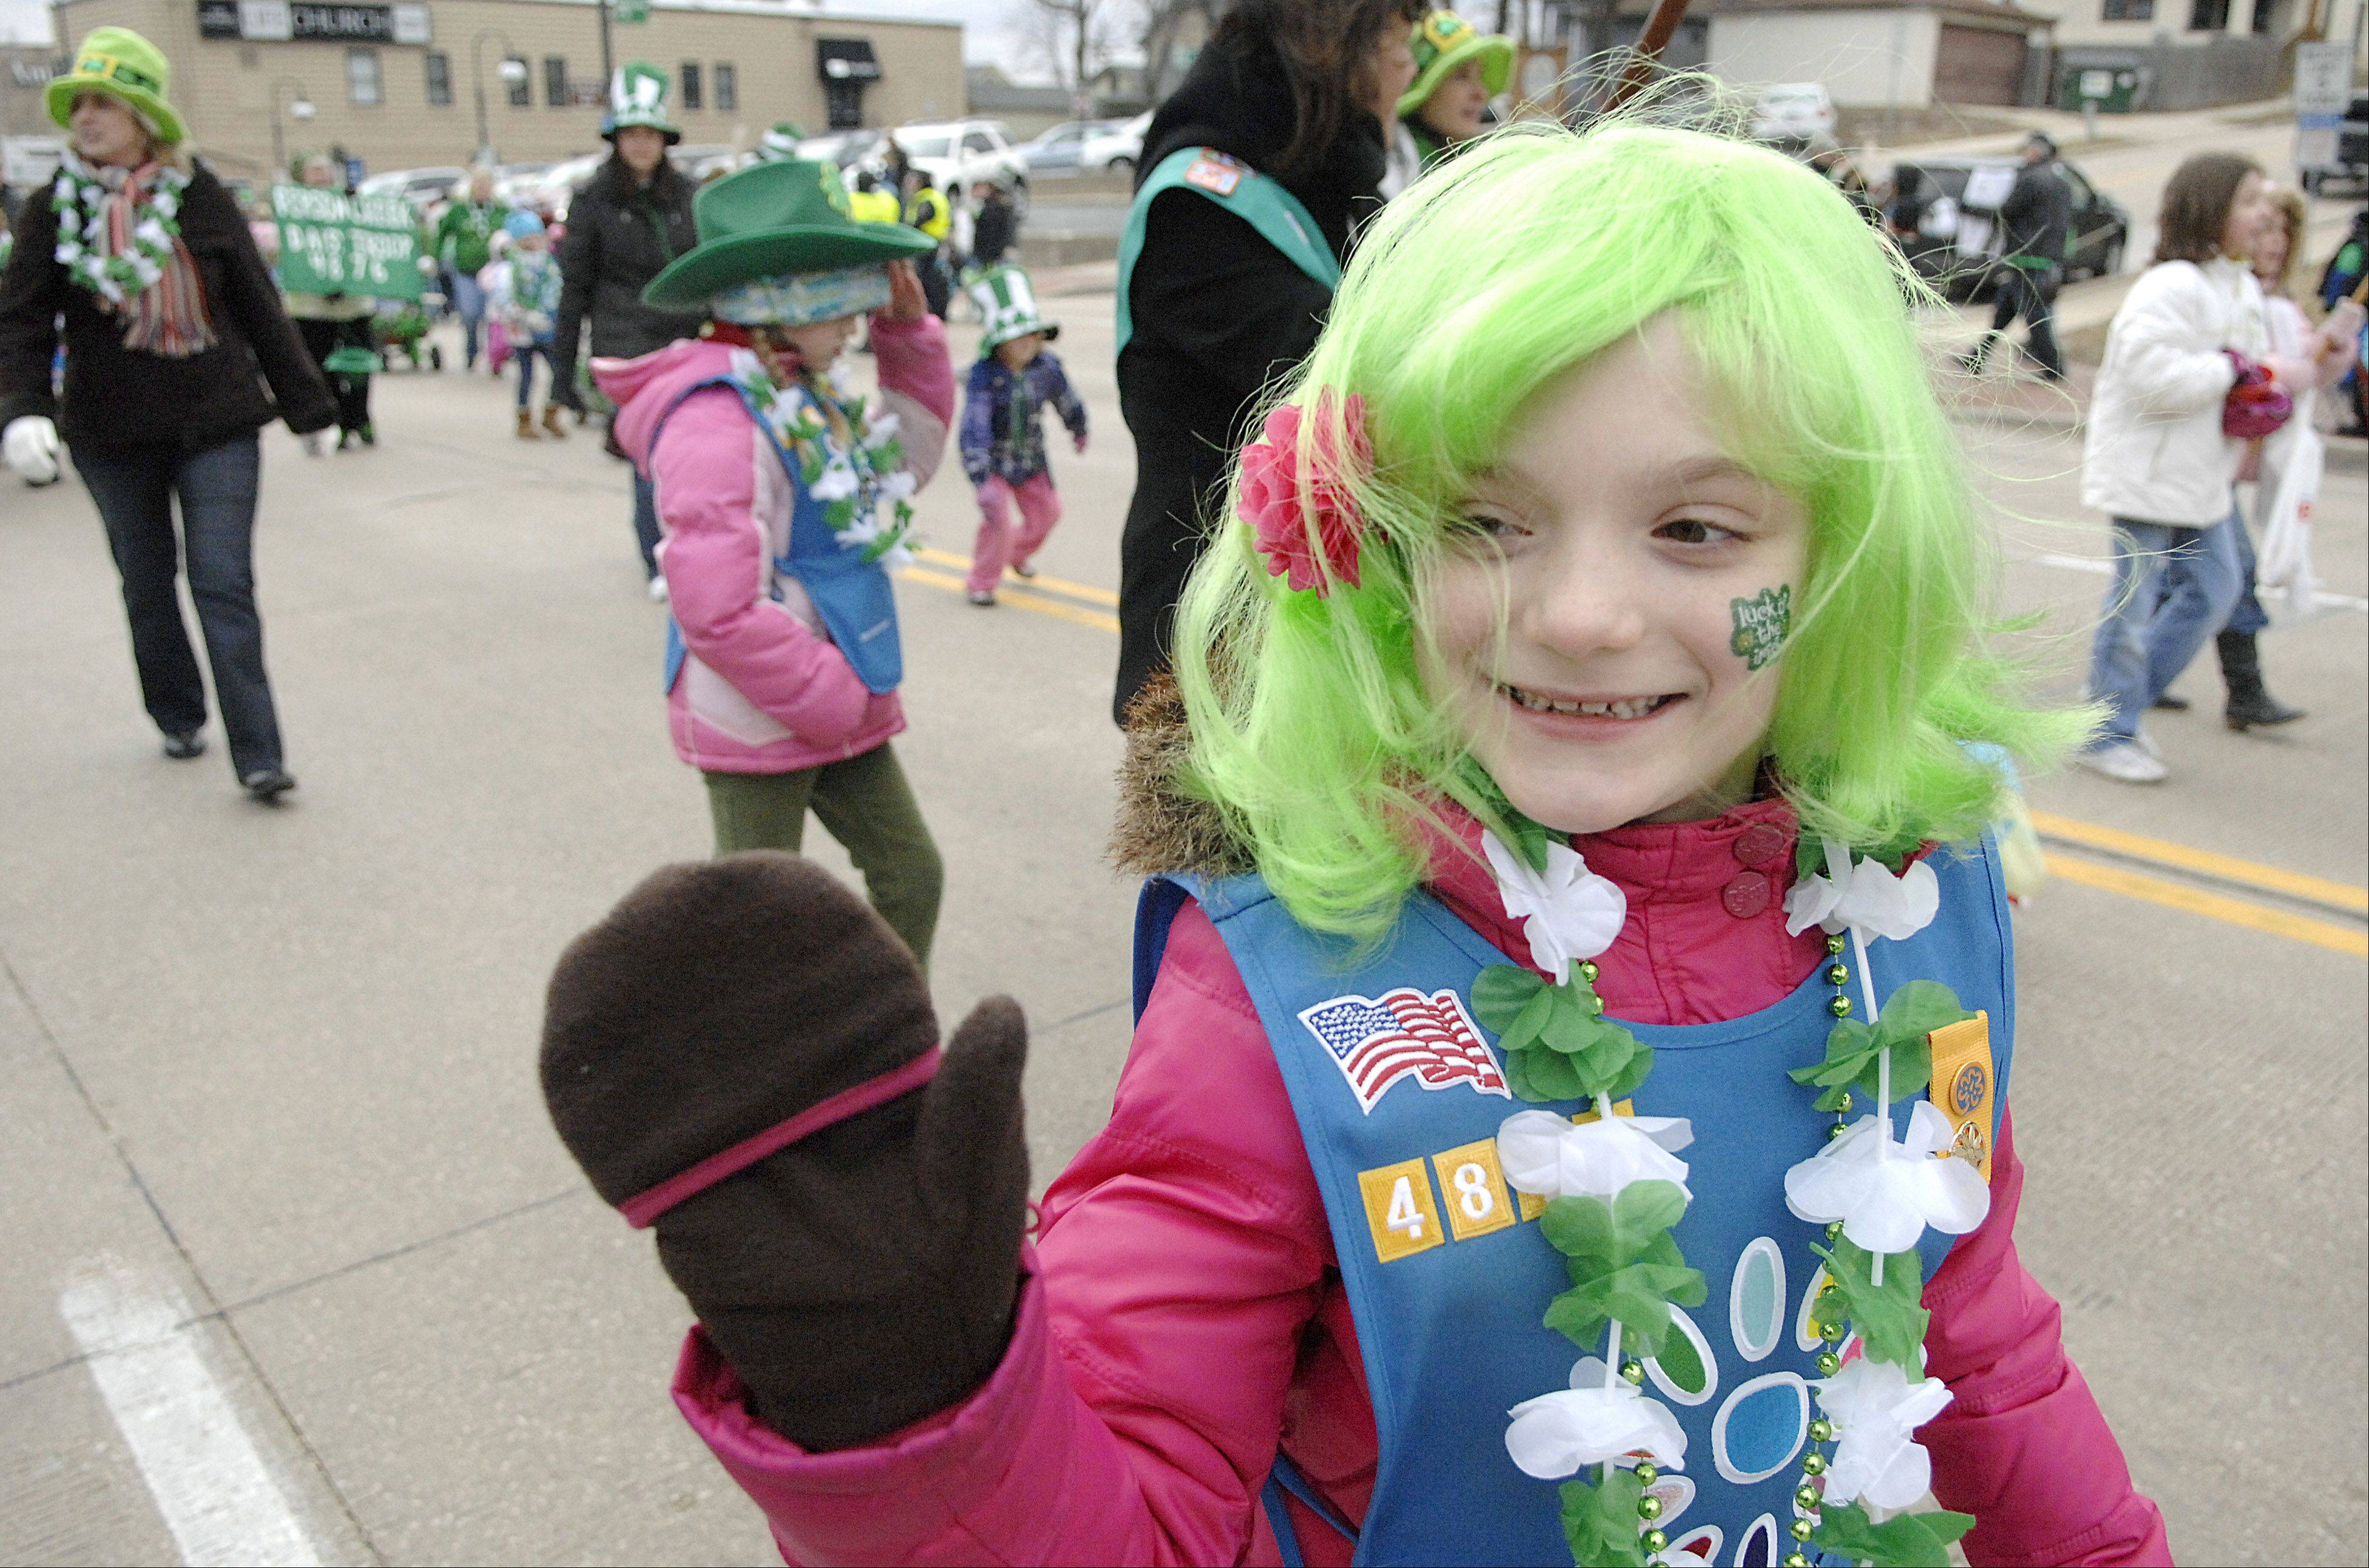 Madison Schiffer, 7, of St. Charles waves to the crowds watching the St. Patrick's Day parade march through downtown St. Charles last year. Madison and her fellow Daisy Troop 4879 from Ferson Creek Elementary School walked in the annual parade.